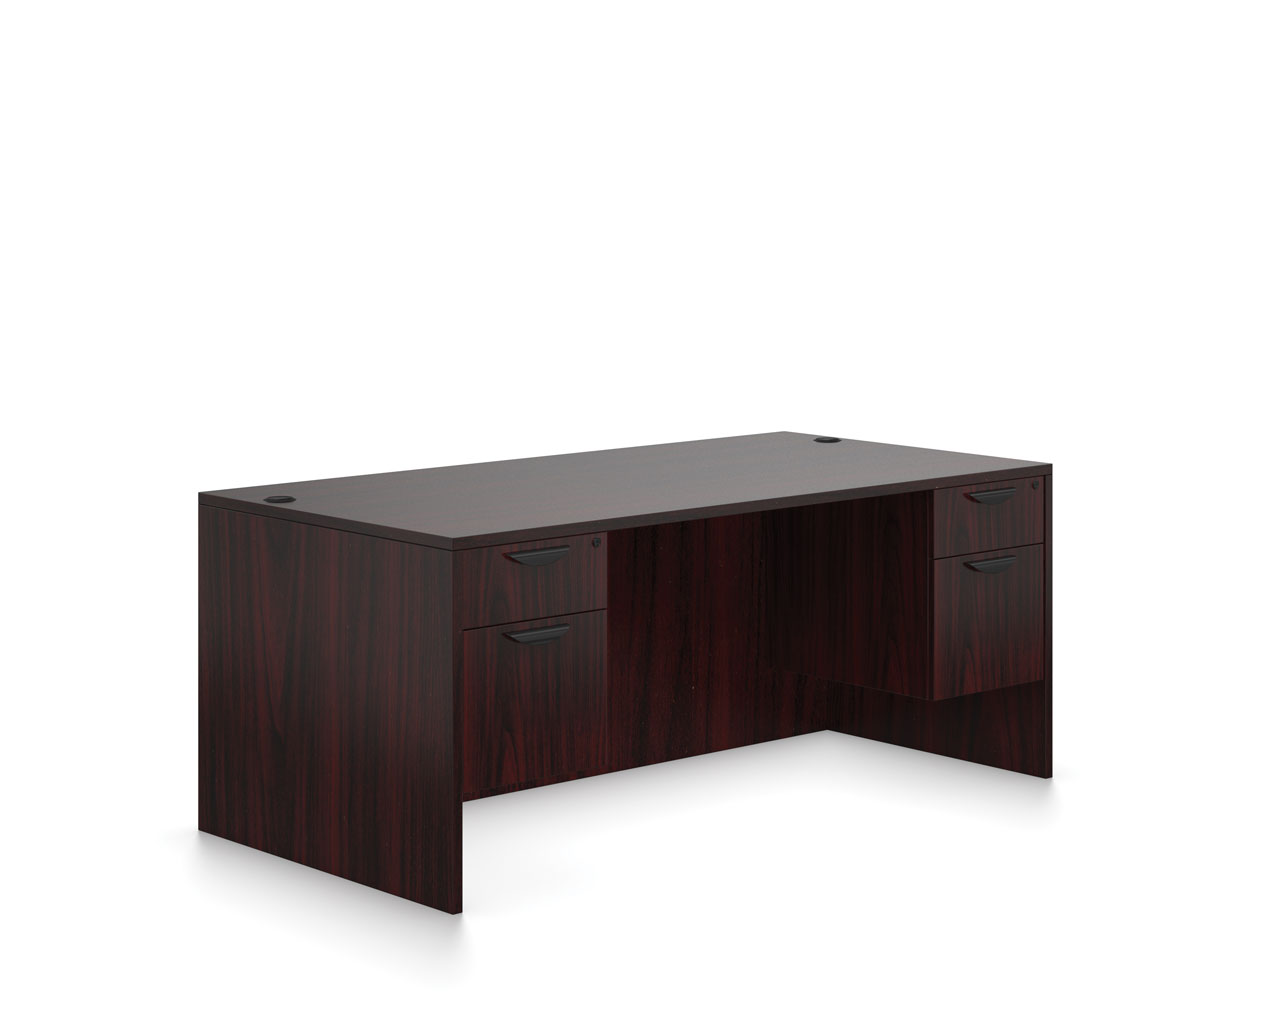 Affordable Office Furniture Desks from OTG - Shown in American Mahogany woodgrain